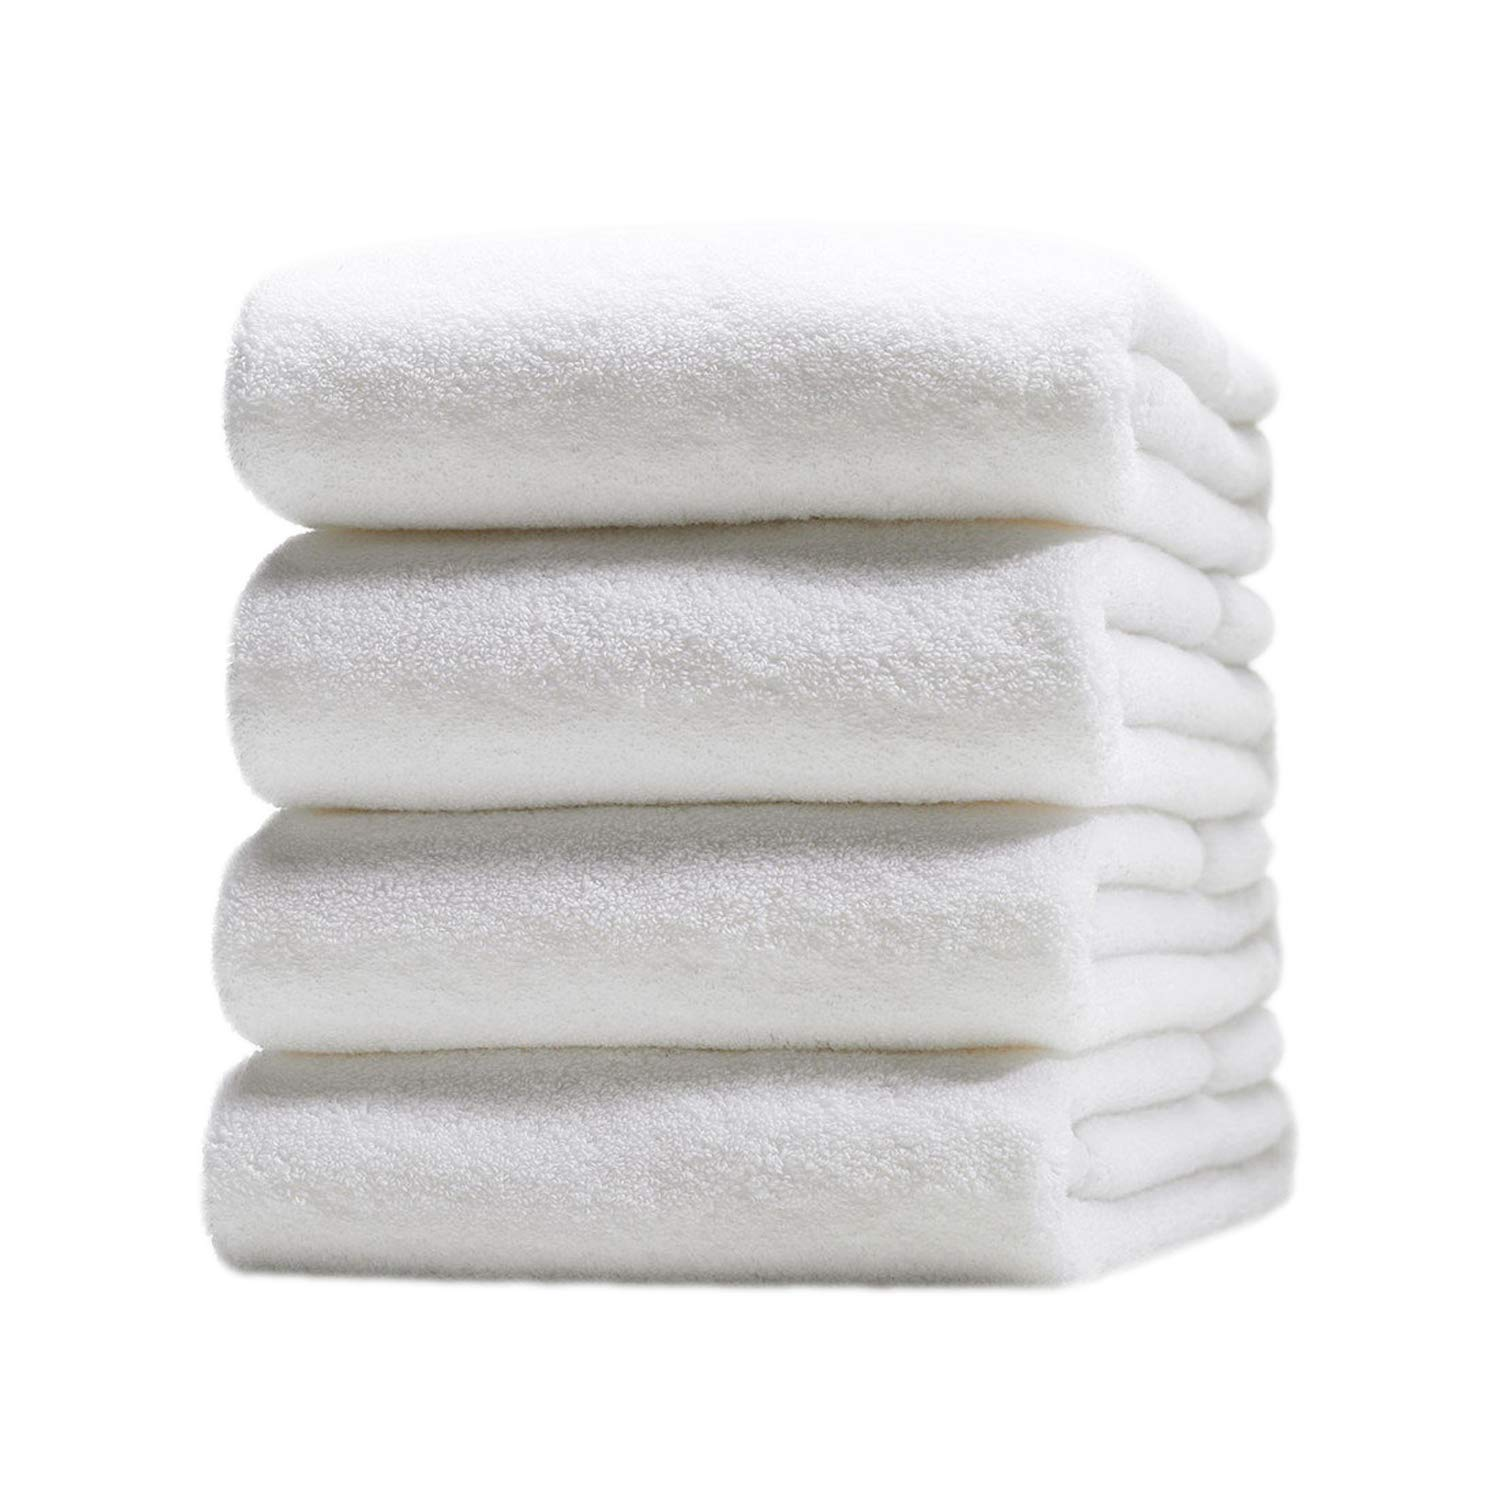 Livingtex 100 Pack White Bath Sheet Cotton Extra Large Luxury Towels 35 x 70-Inch 600 GSM Soft Water Absorbance Economy Pack Hotel, Spa, Salon